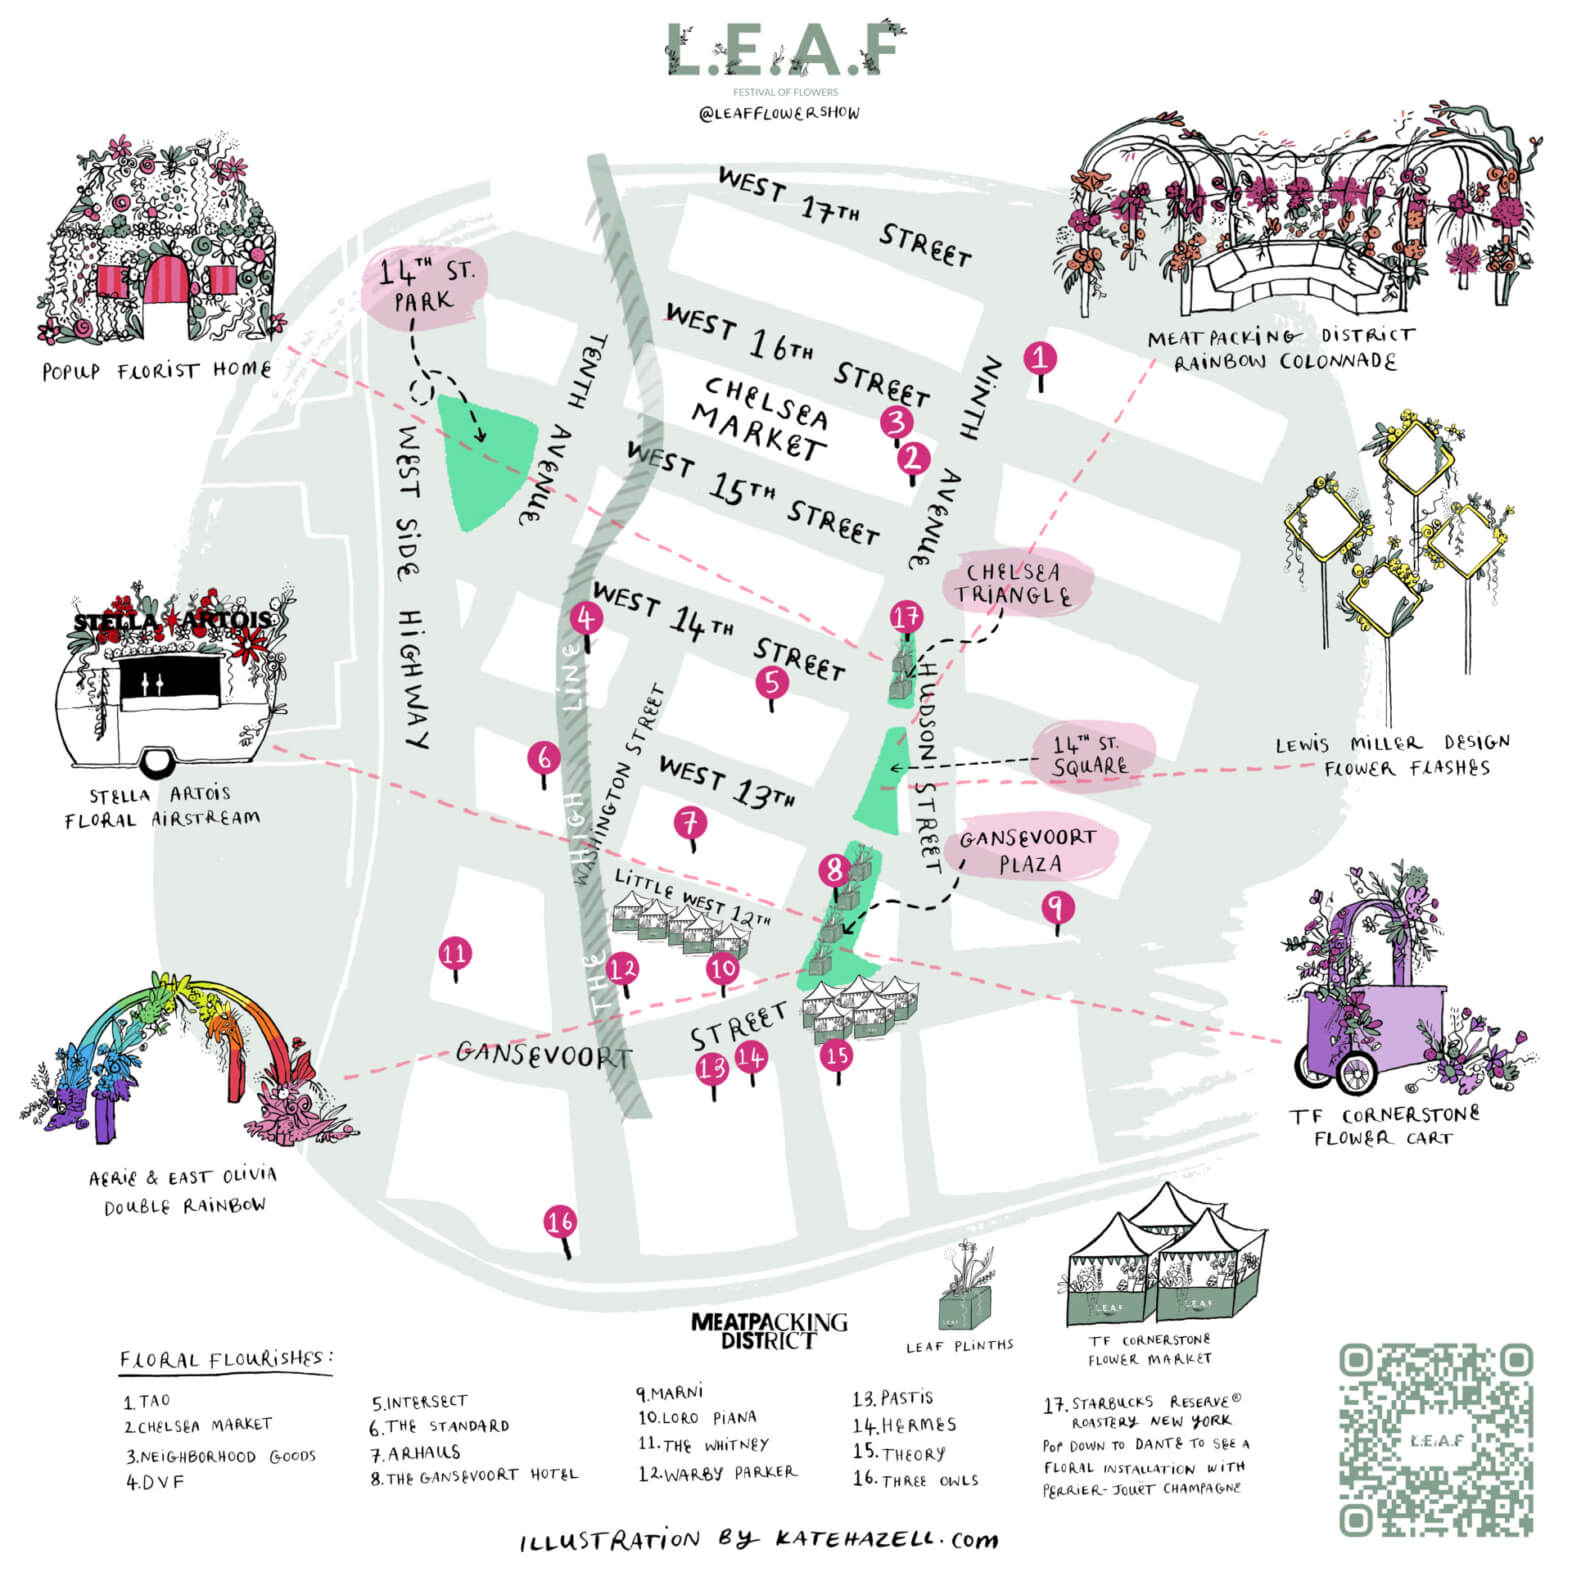 Map of all installations and booths to be seen at the L.E.A.F. flower festival